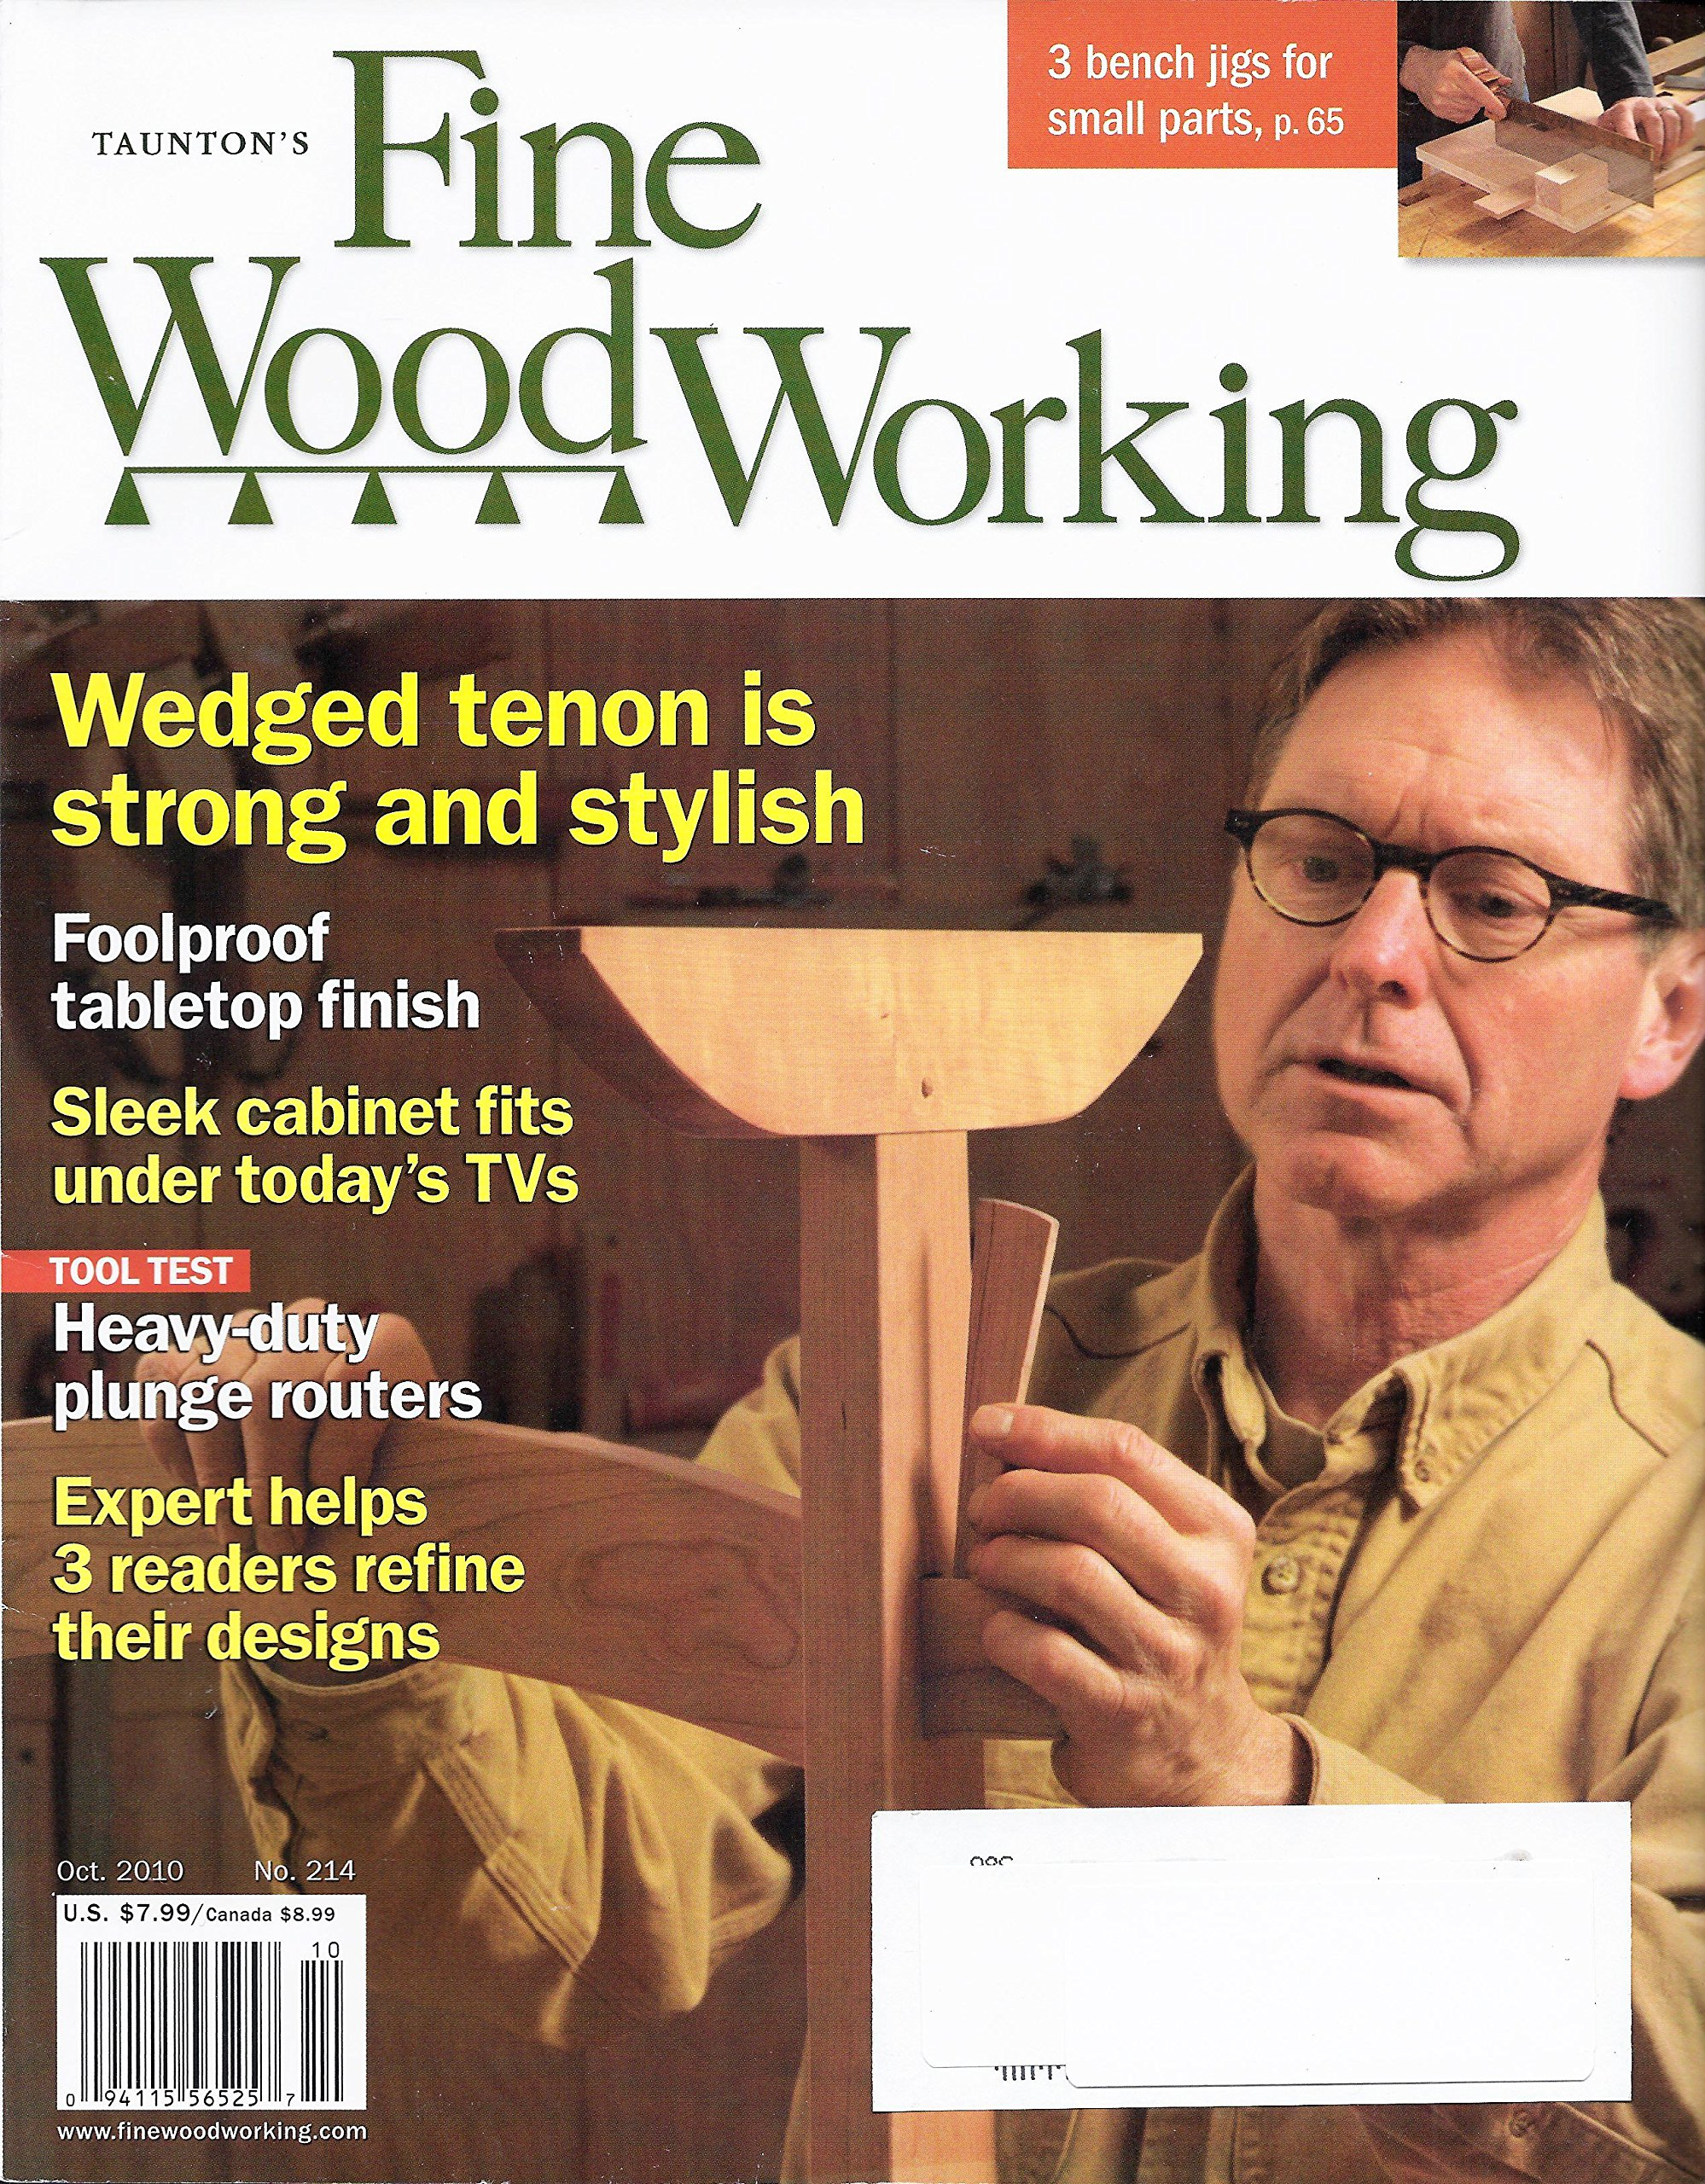 Taunton's Fine Woodworking (October 2010 - No. 214) - Wedged tenon is strong and stylish - Foolproof tabletop finish - Sleek cabinet fits under today's TVs - Tool Test: Heavy-duty plunge routers - Expert helps 3 readers refine their designs